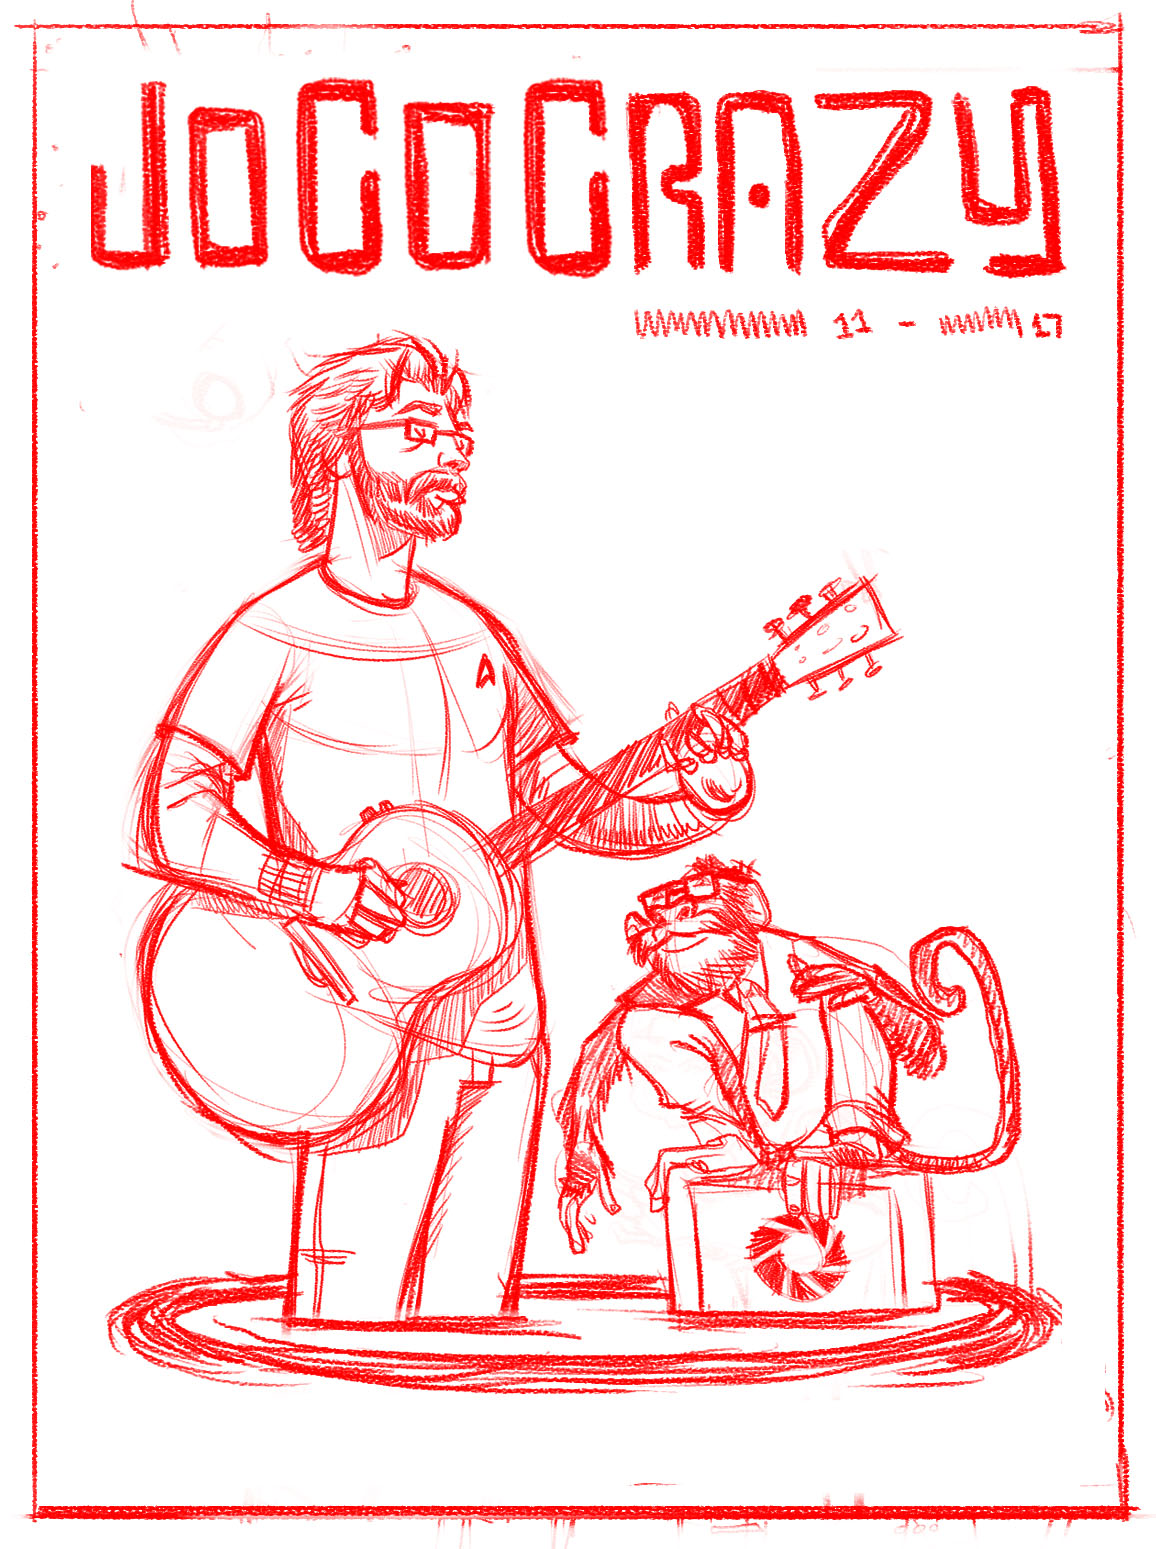 Jonathan Coulton - image 13 - student project